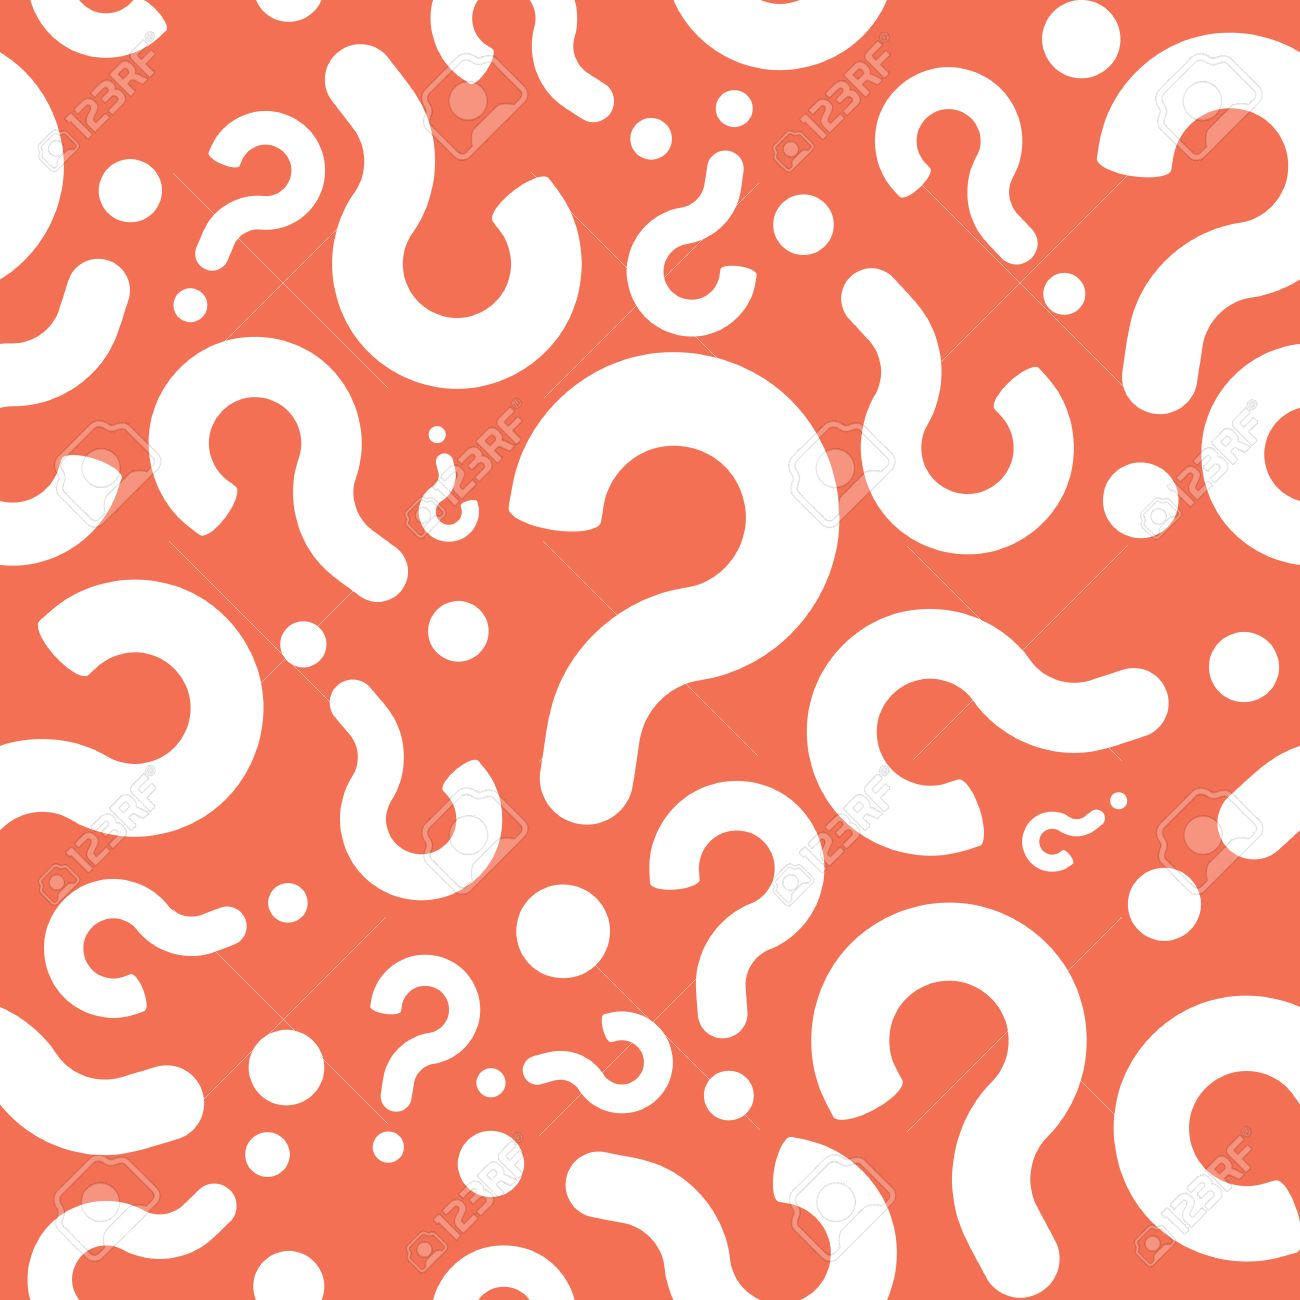 Seamless Question Mark Mystery Pattern Background Royalty Free ...